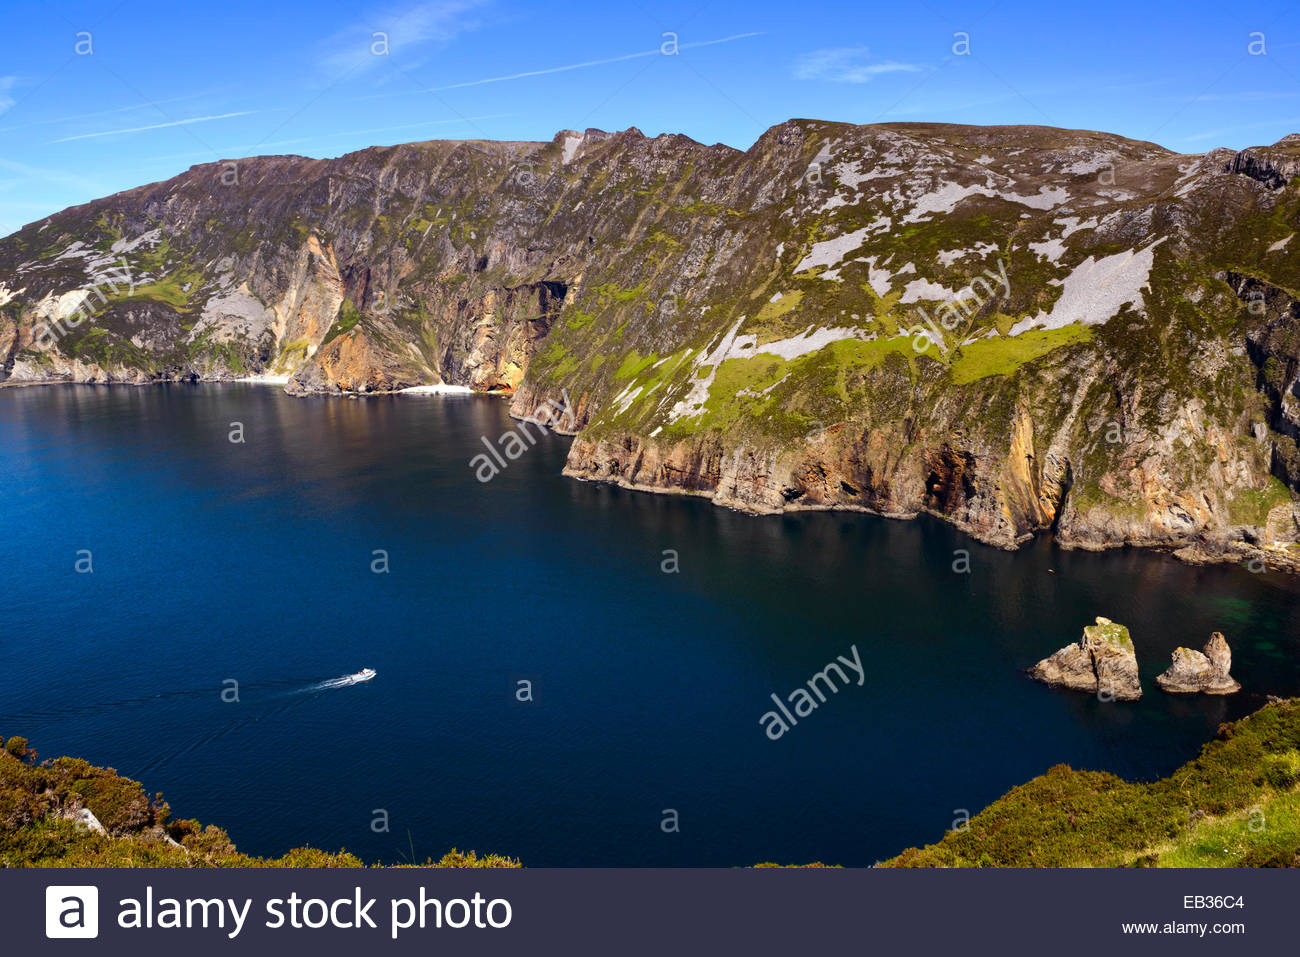 Slieve League sea cliffs in Donegal, west coast of Ireland. - Stock Image